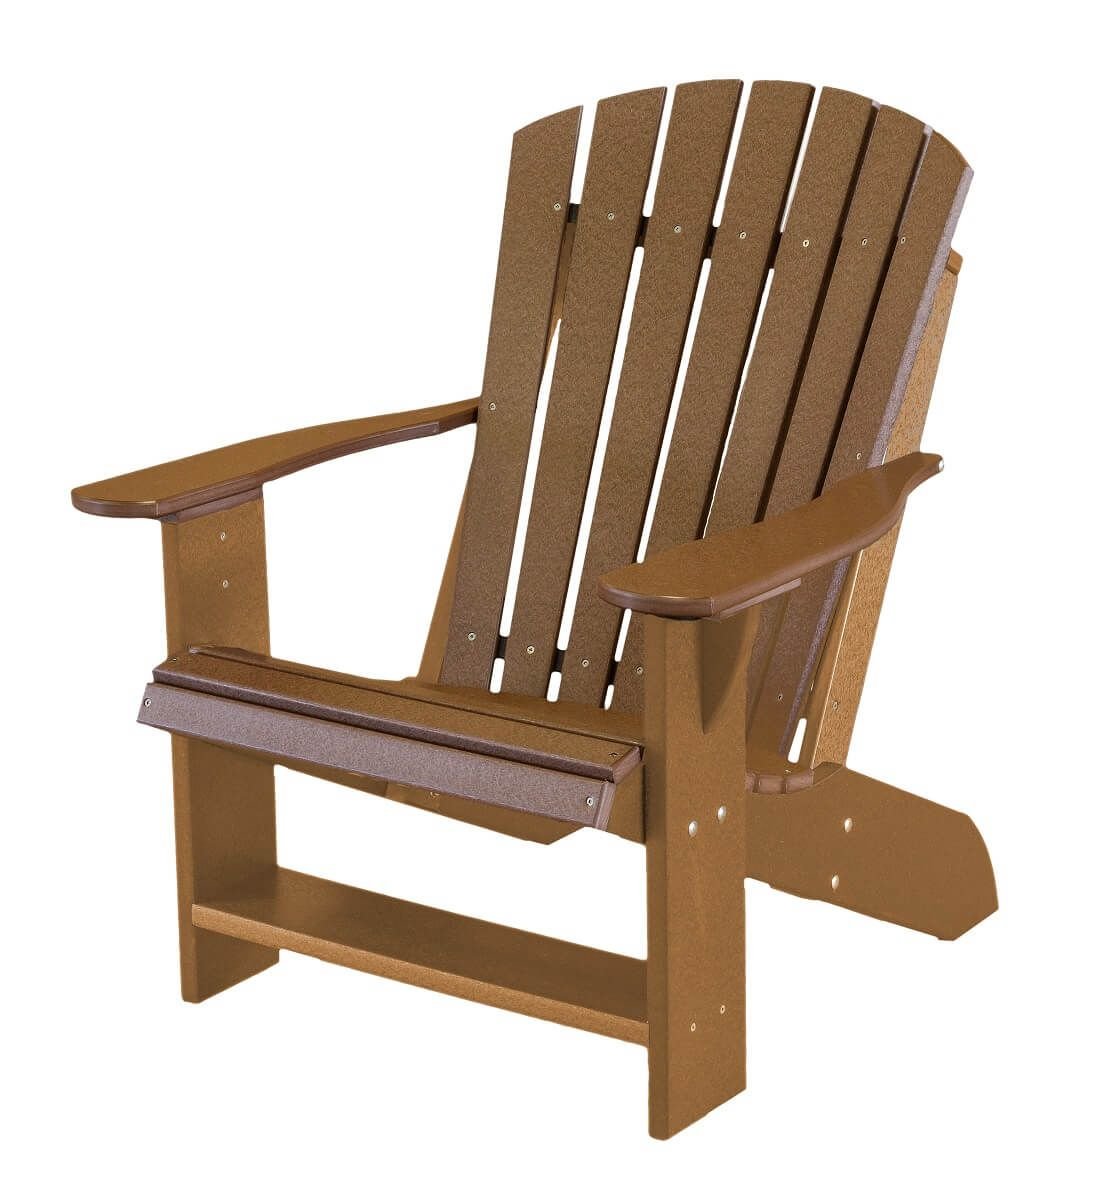 Tudor Brown Sidra Adirondack Chair